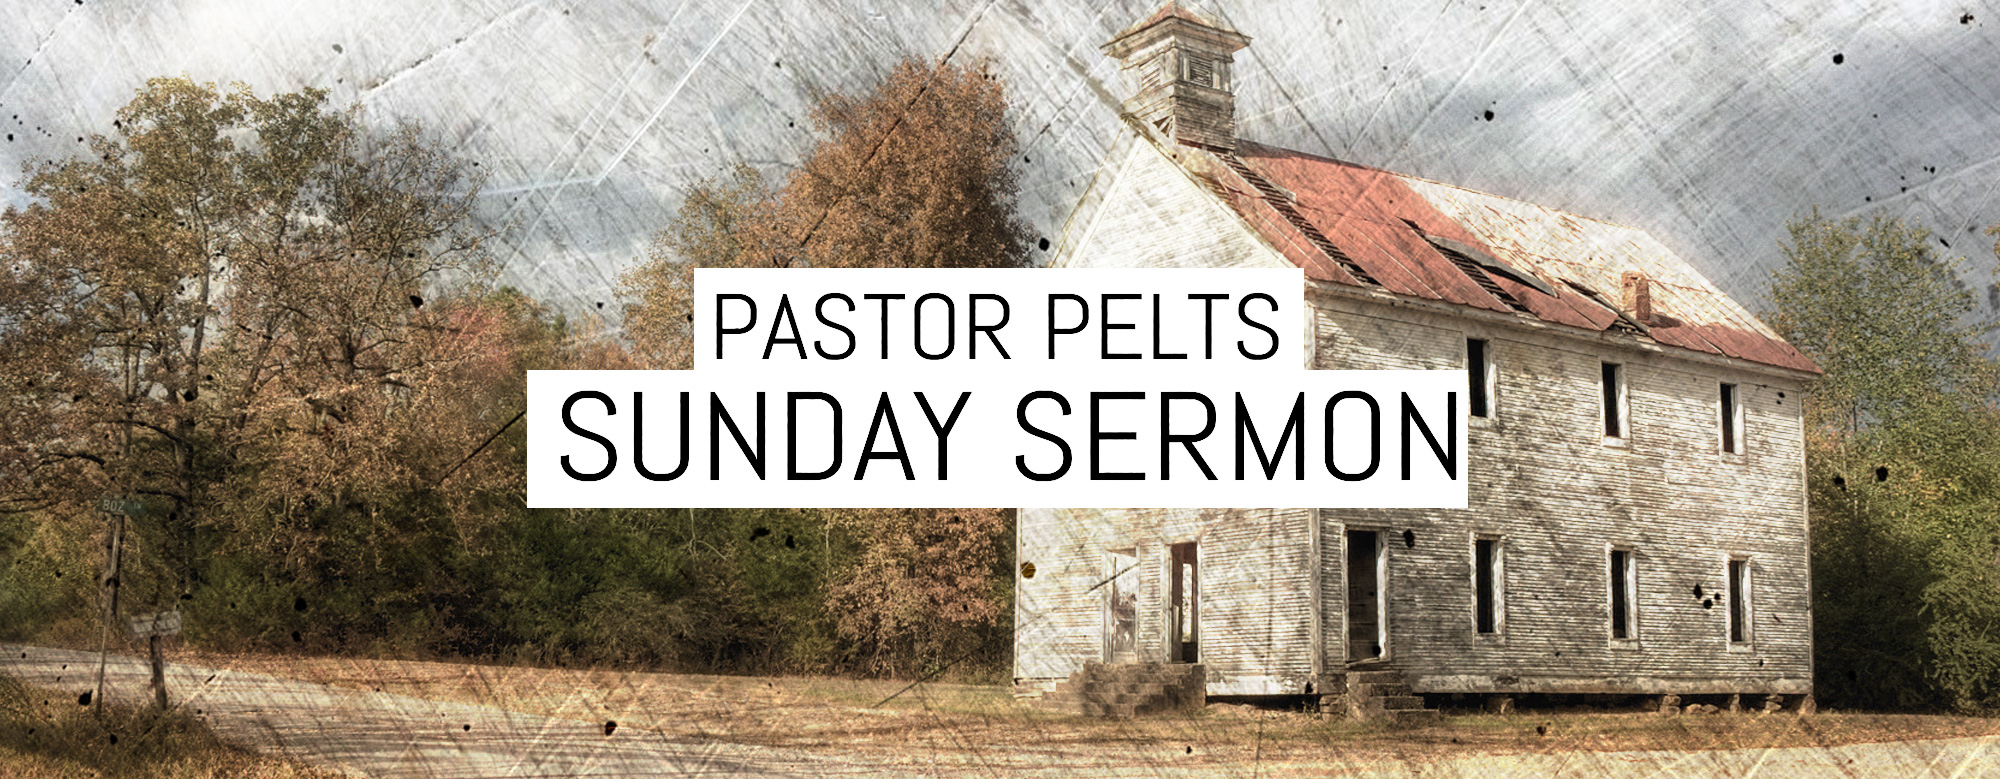 Pastor Pelts Sunday Sermon